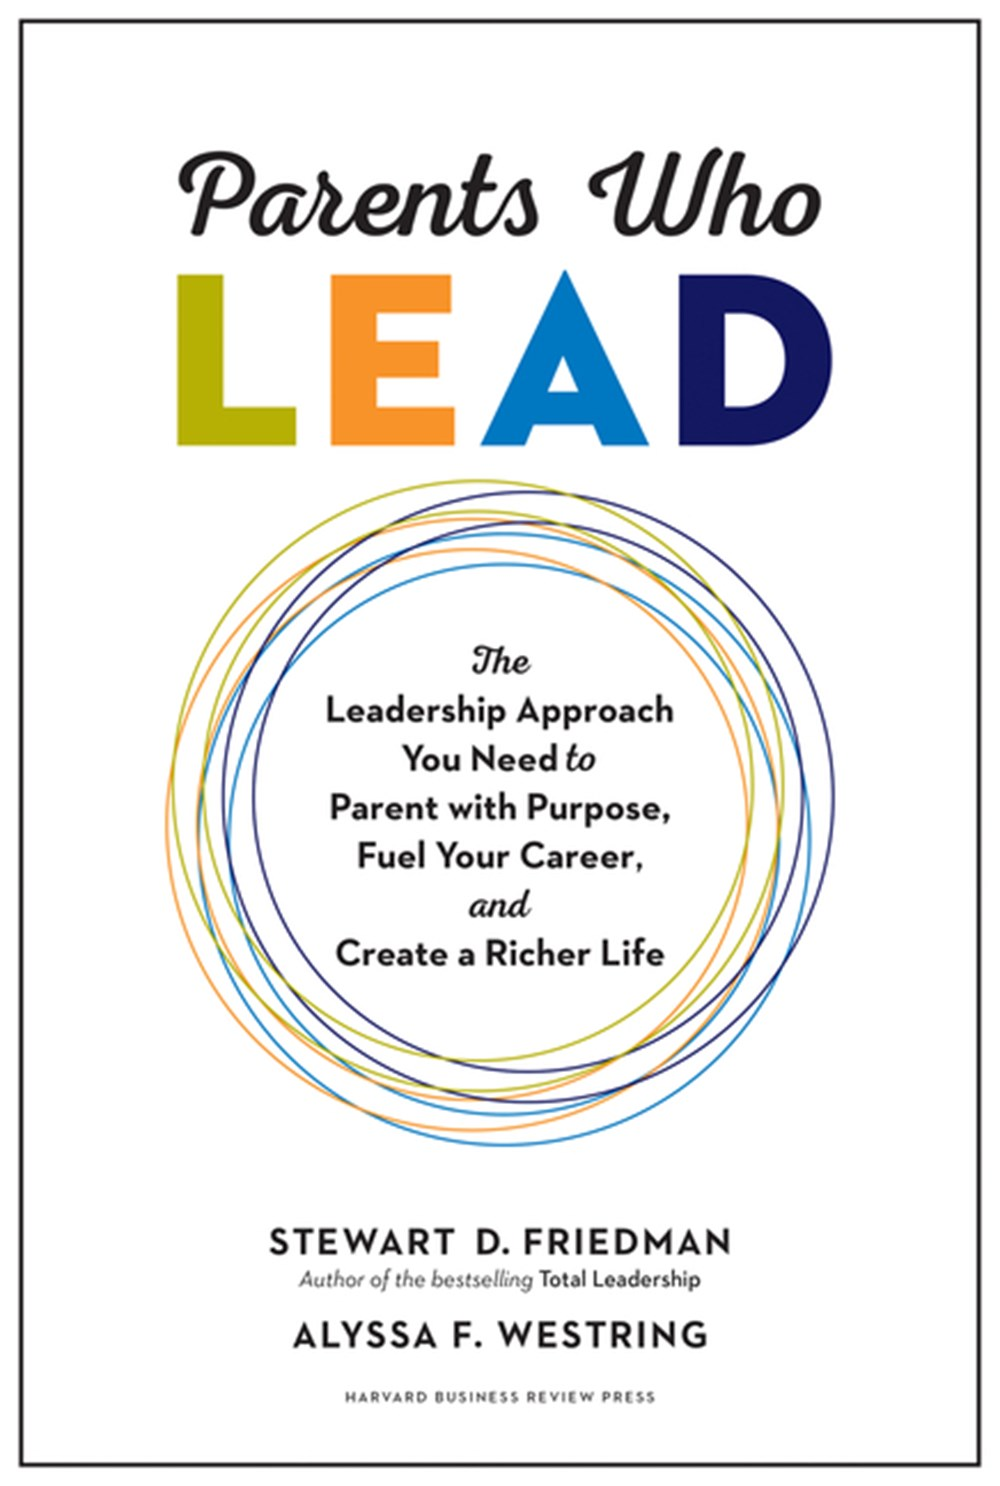 Parents Who Lead The Leadership Approach You Need to Parent with Purpose, Fuel Your Career, and Crea